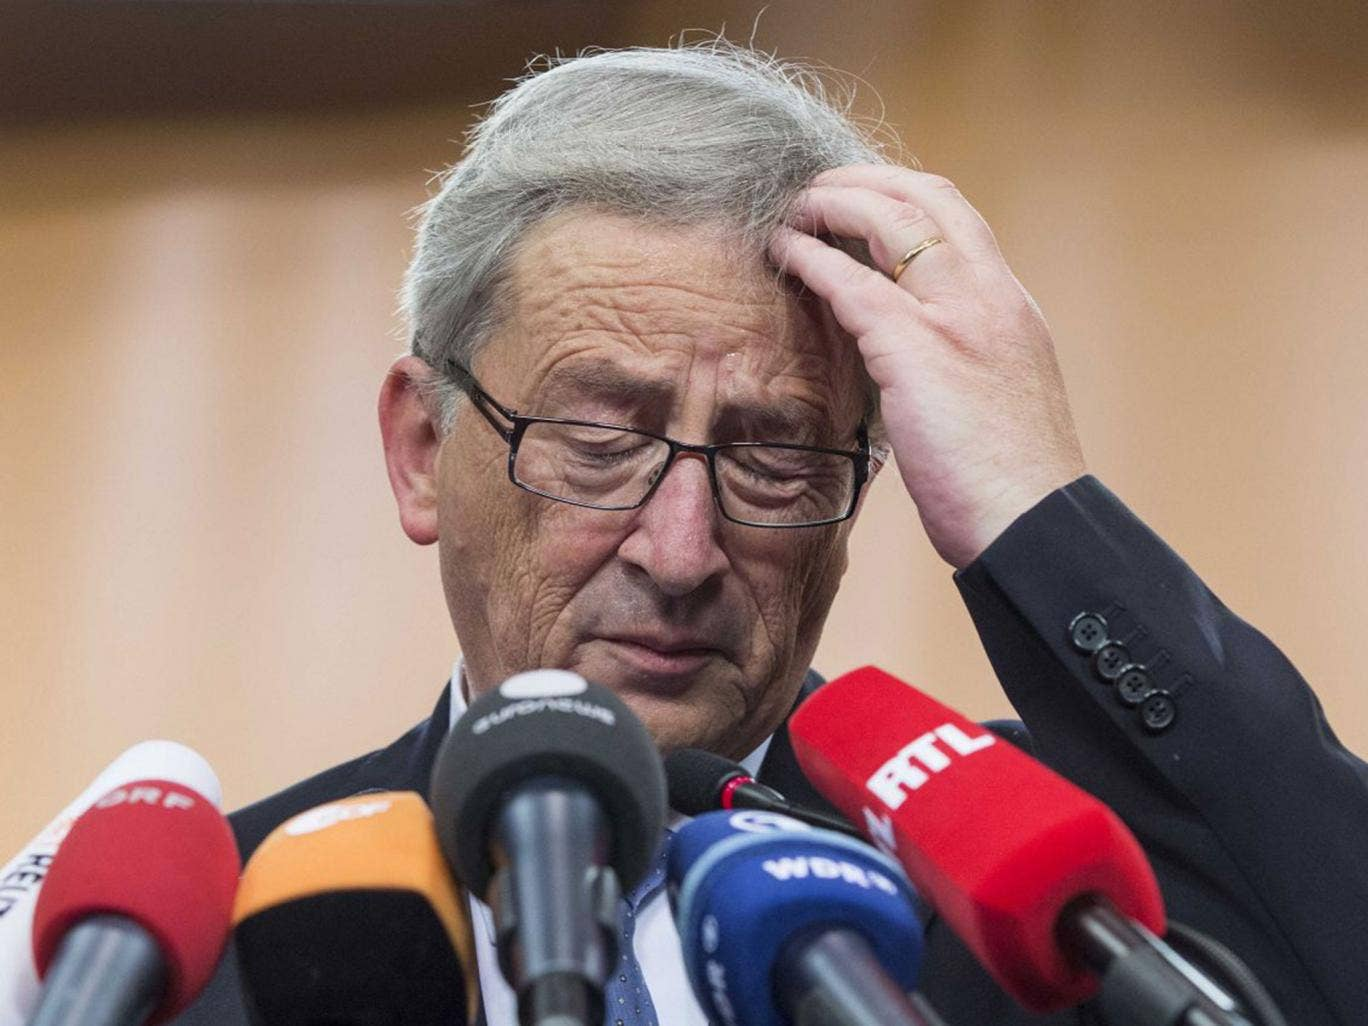 When he finally stood down in Luxembourg last year, he had spent 18 years in power, making him one of the longest-serving democratically elected leaders in the world